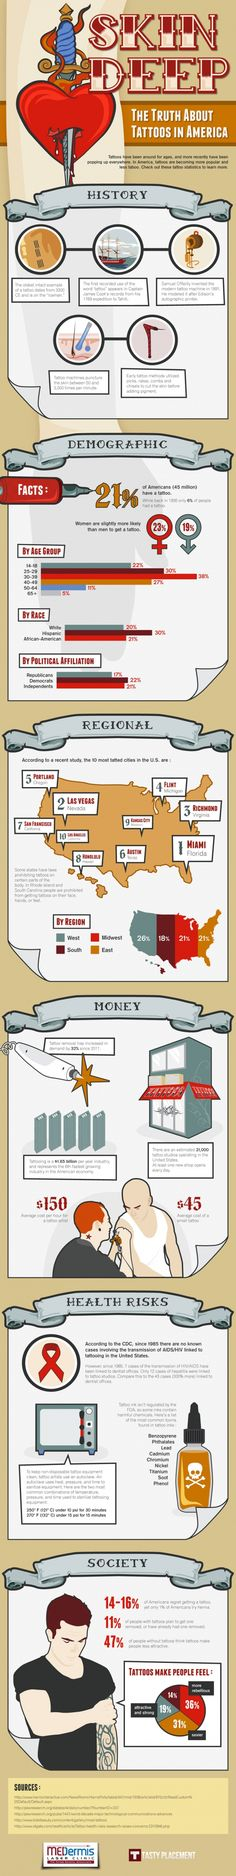 Tattoos in America | #Infographics repinned by @Piktochart